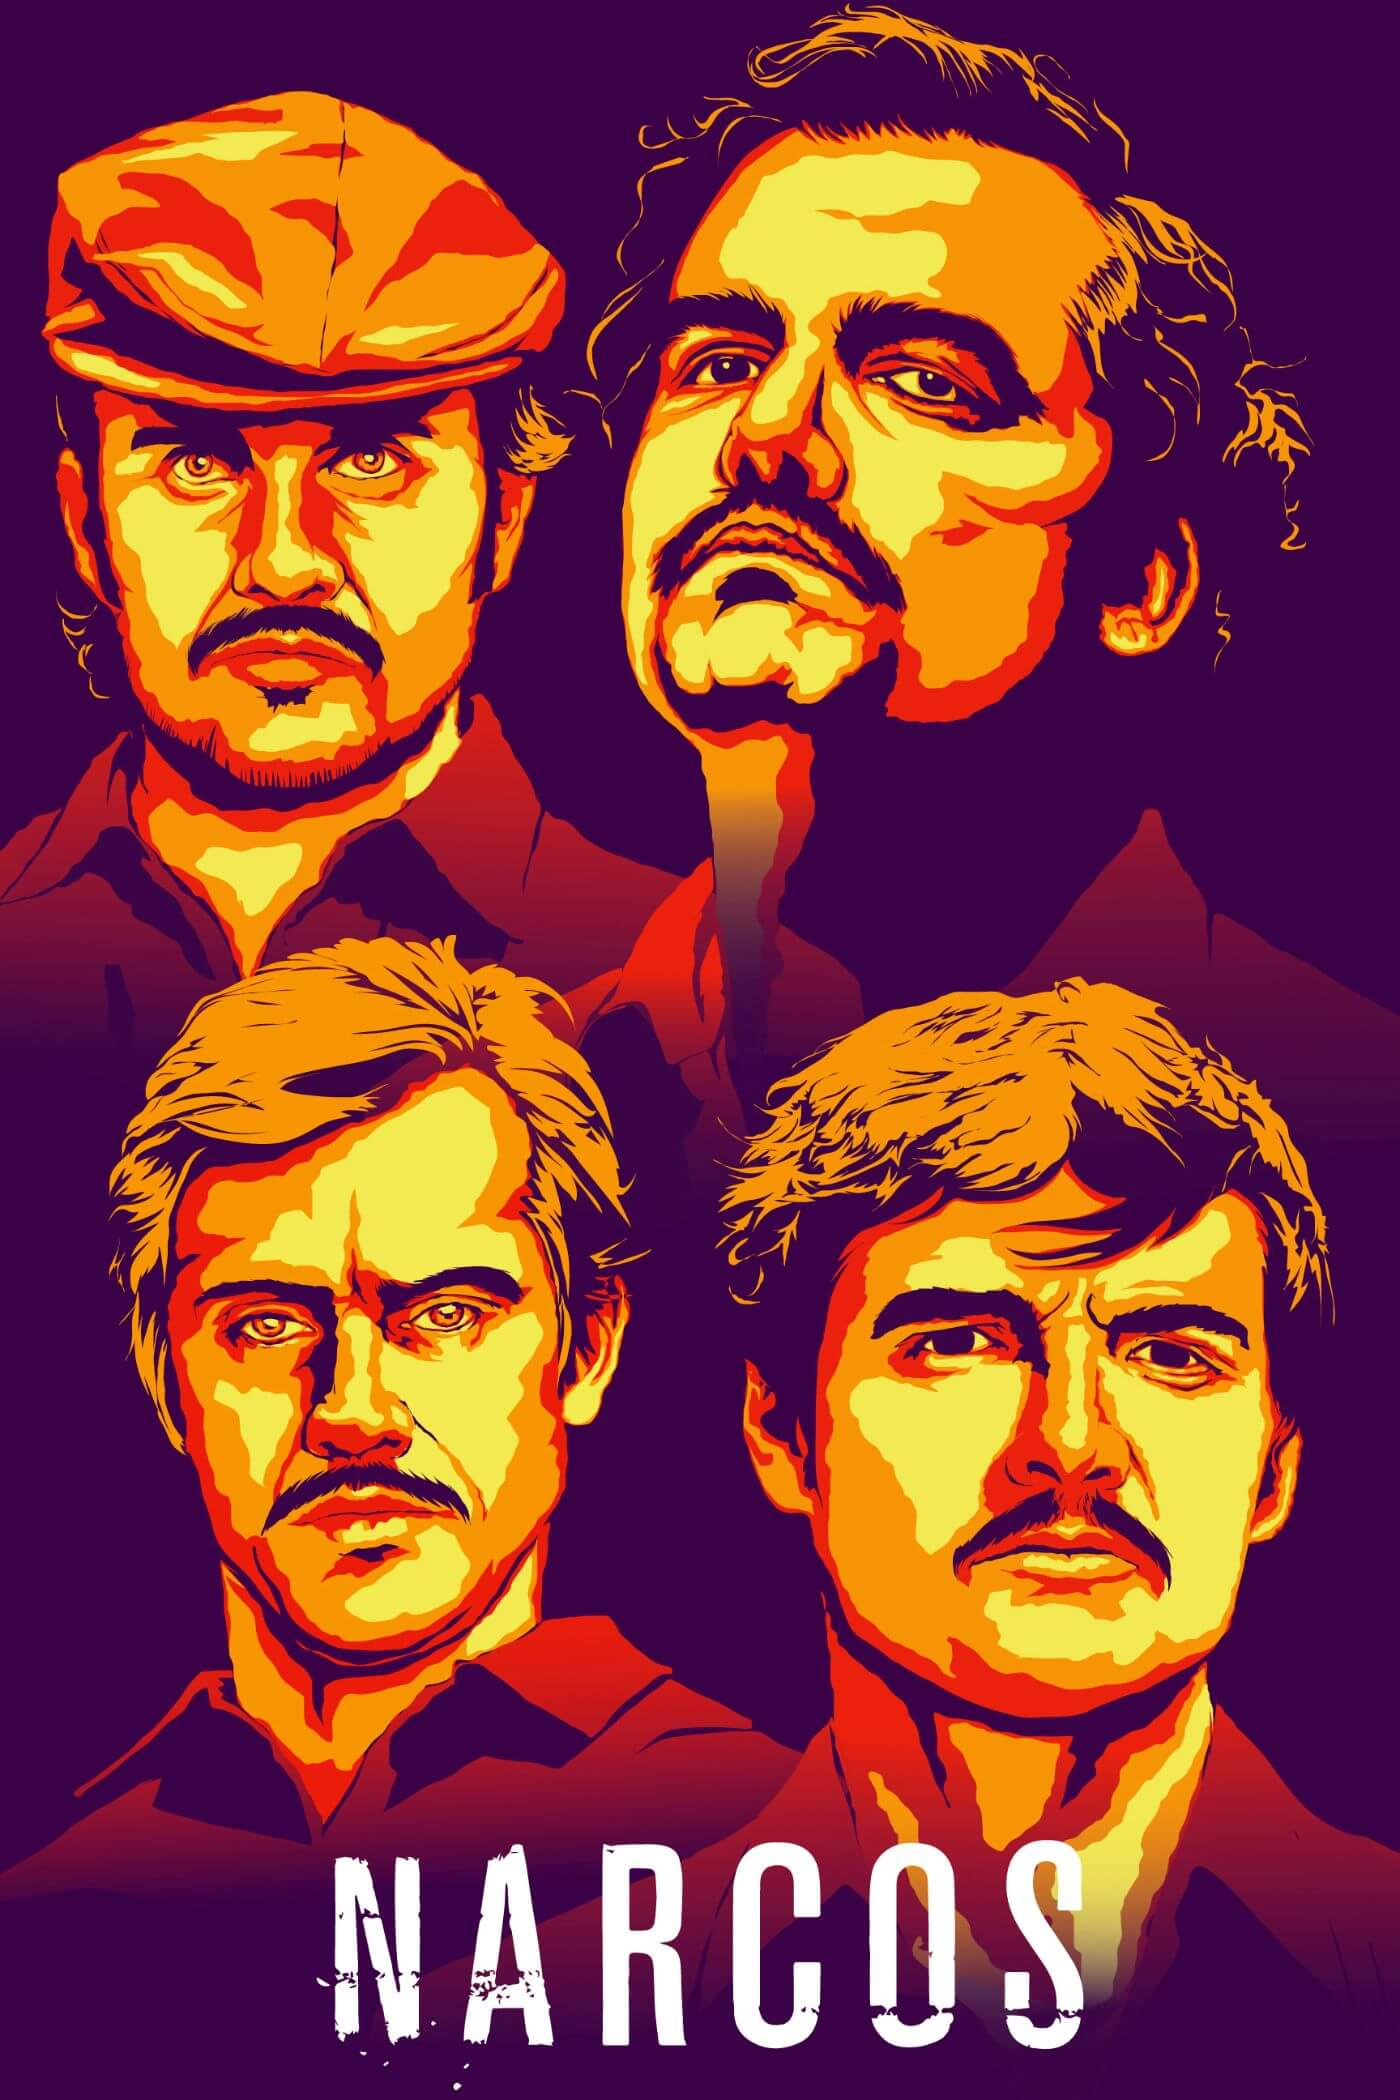 Narcos - Pablo Escobar - Netflix TV Show Poster - Fan Art